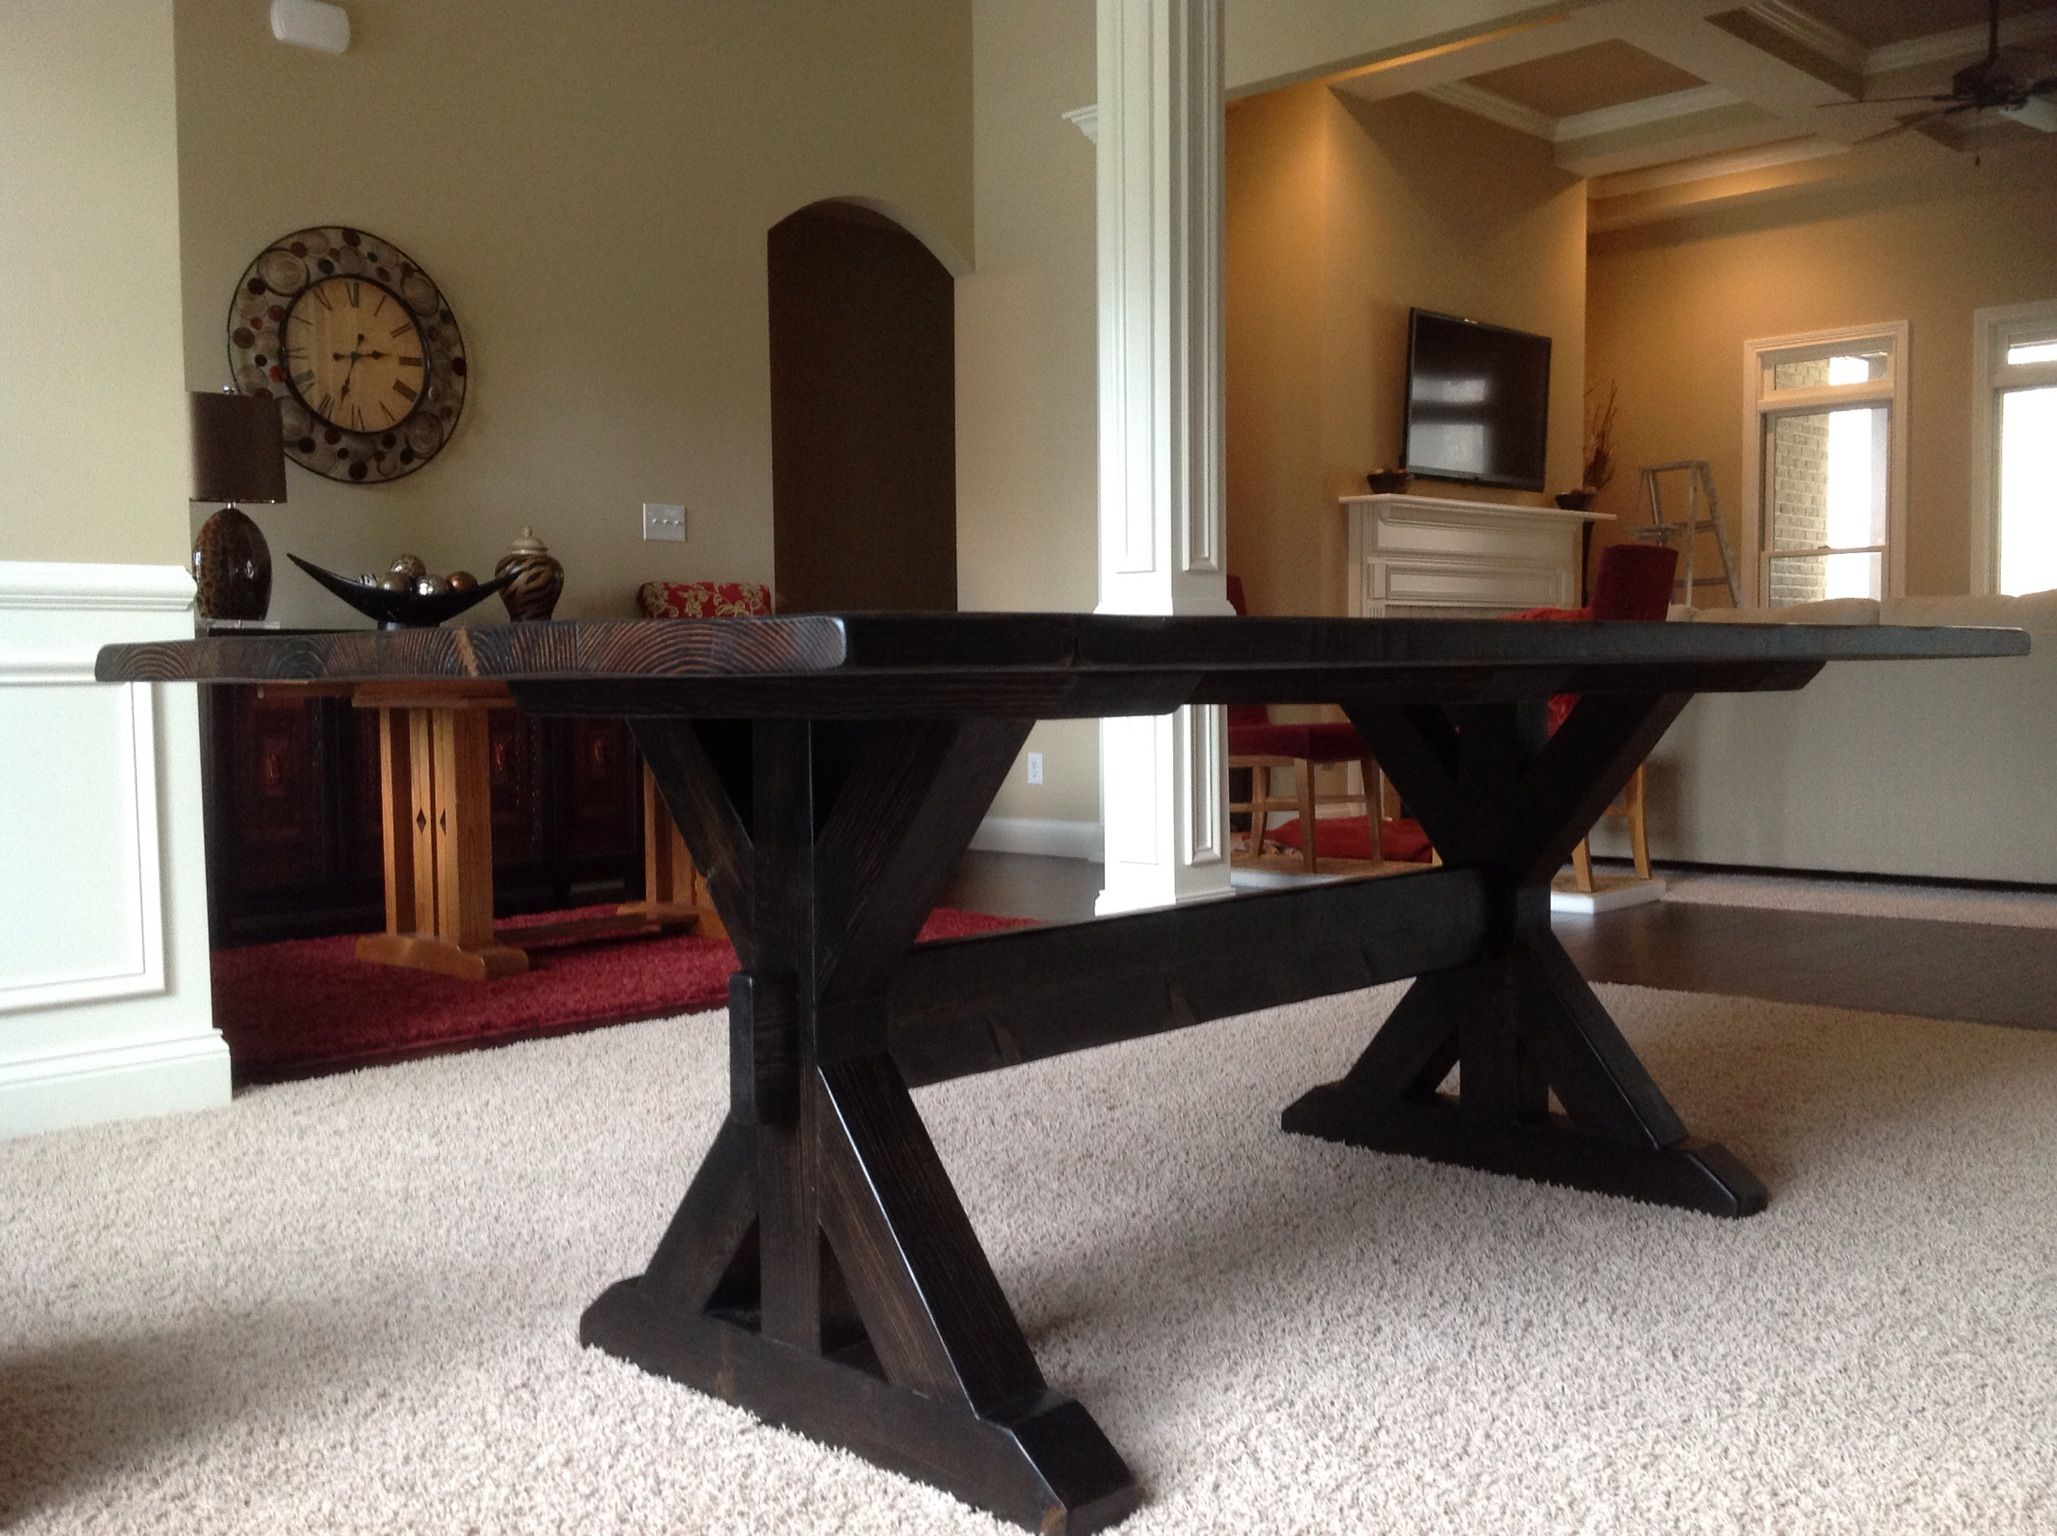 Farmhouse Trestle Table By Brothers Furniture Design Rustic Designs For Less Contact Brothersfurnituredesigns Gmail More Information